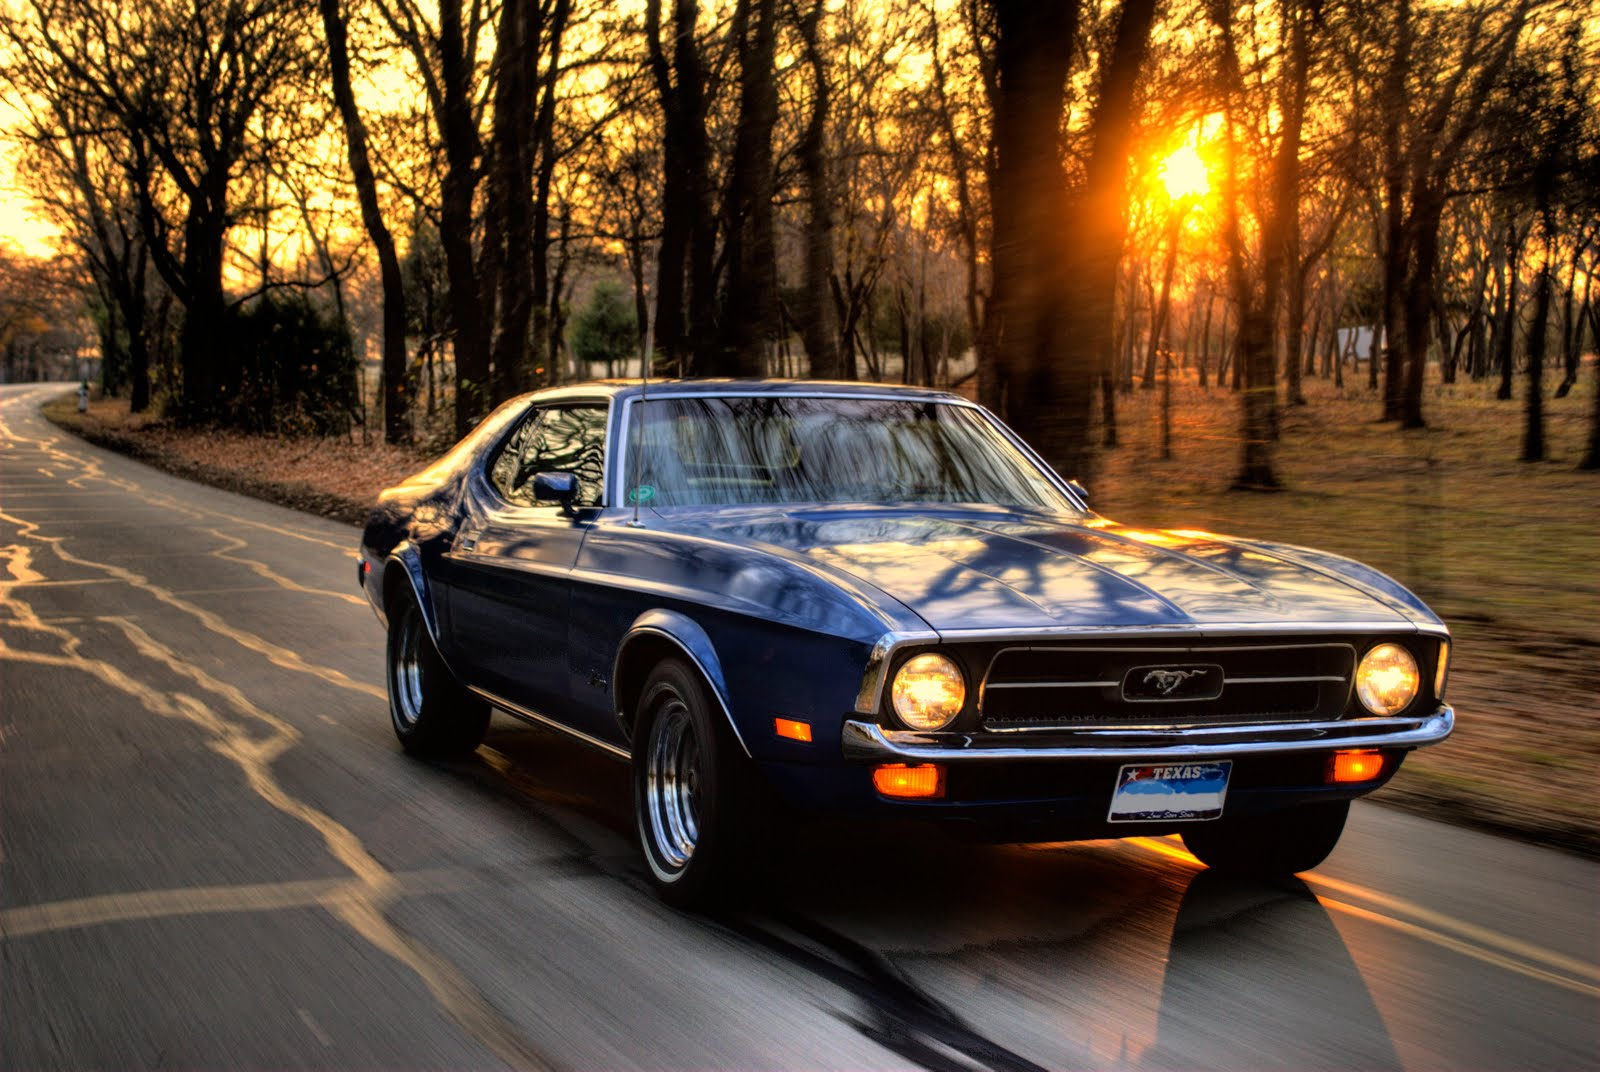 Ford Mustang HD Wallpapers ~ HD Car Wallpapers